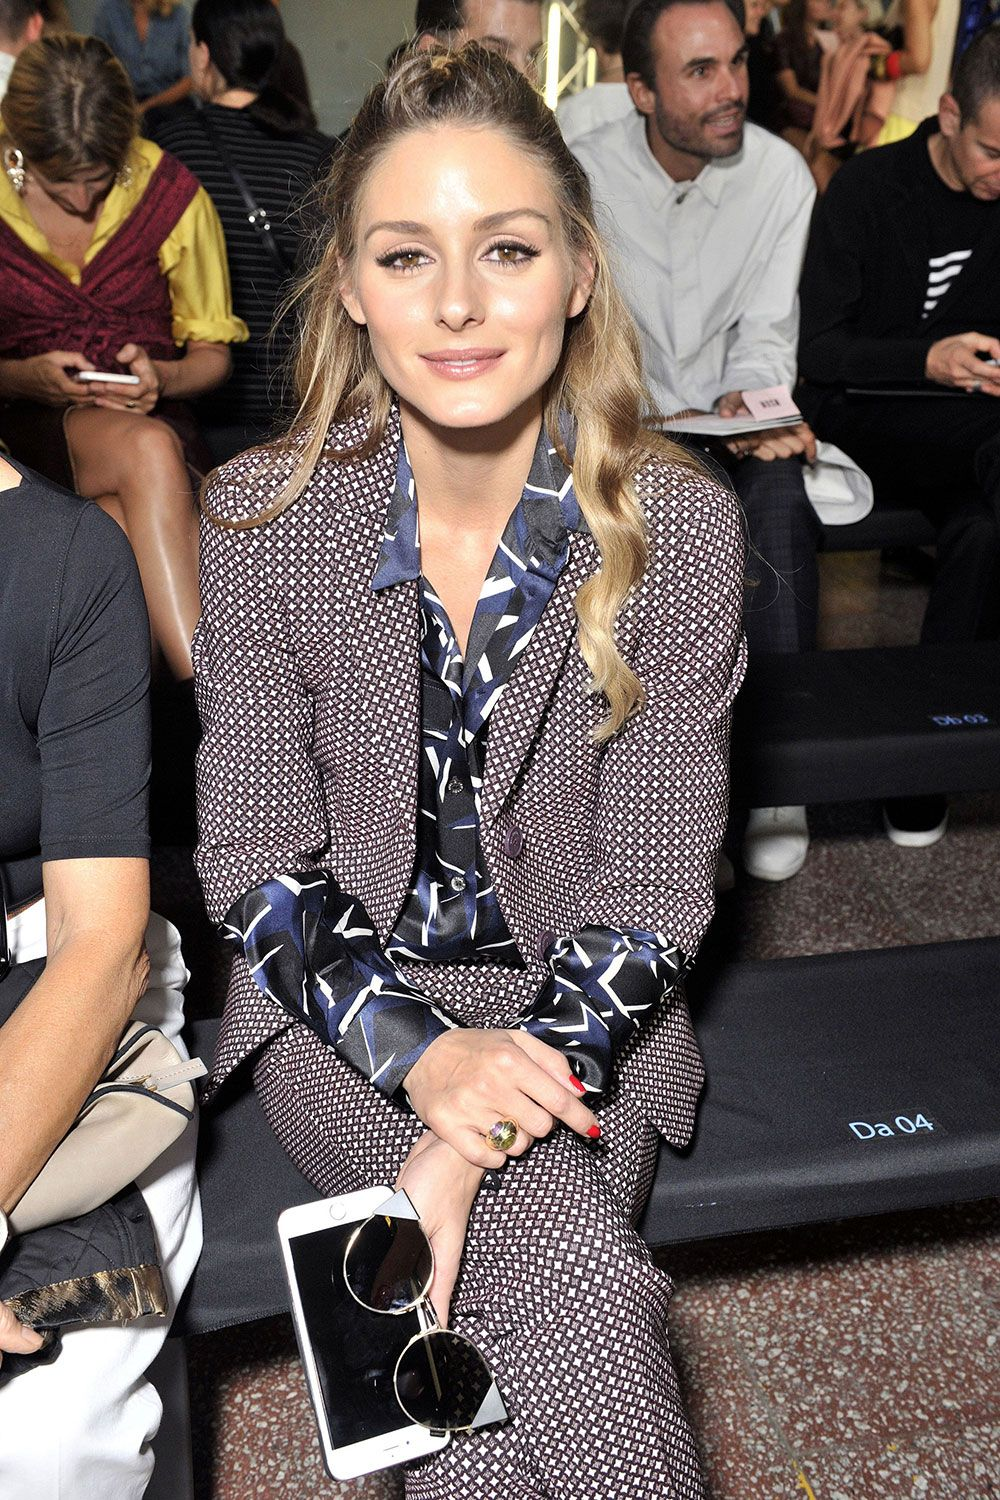 Olivia Palermo on the MSGM front row during Milan Fashion Week - September 2016 #opss17mfw